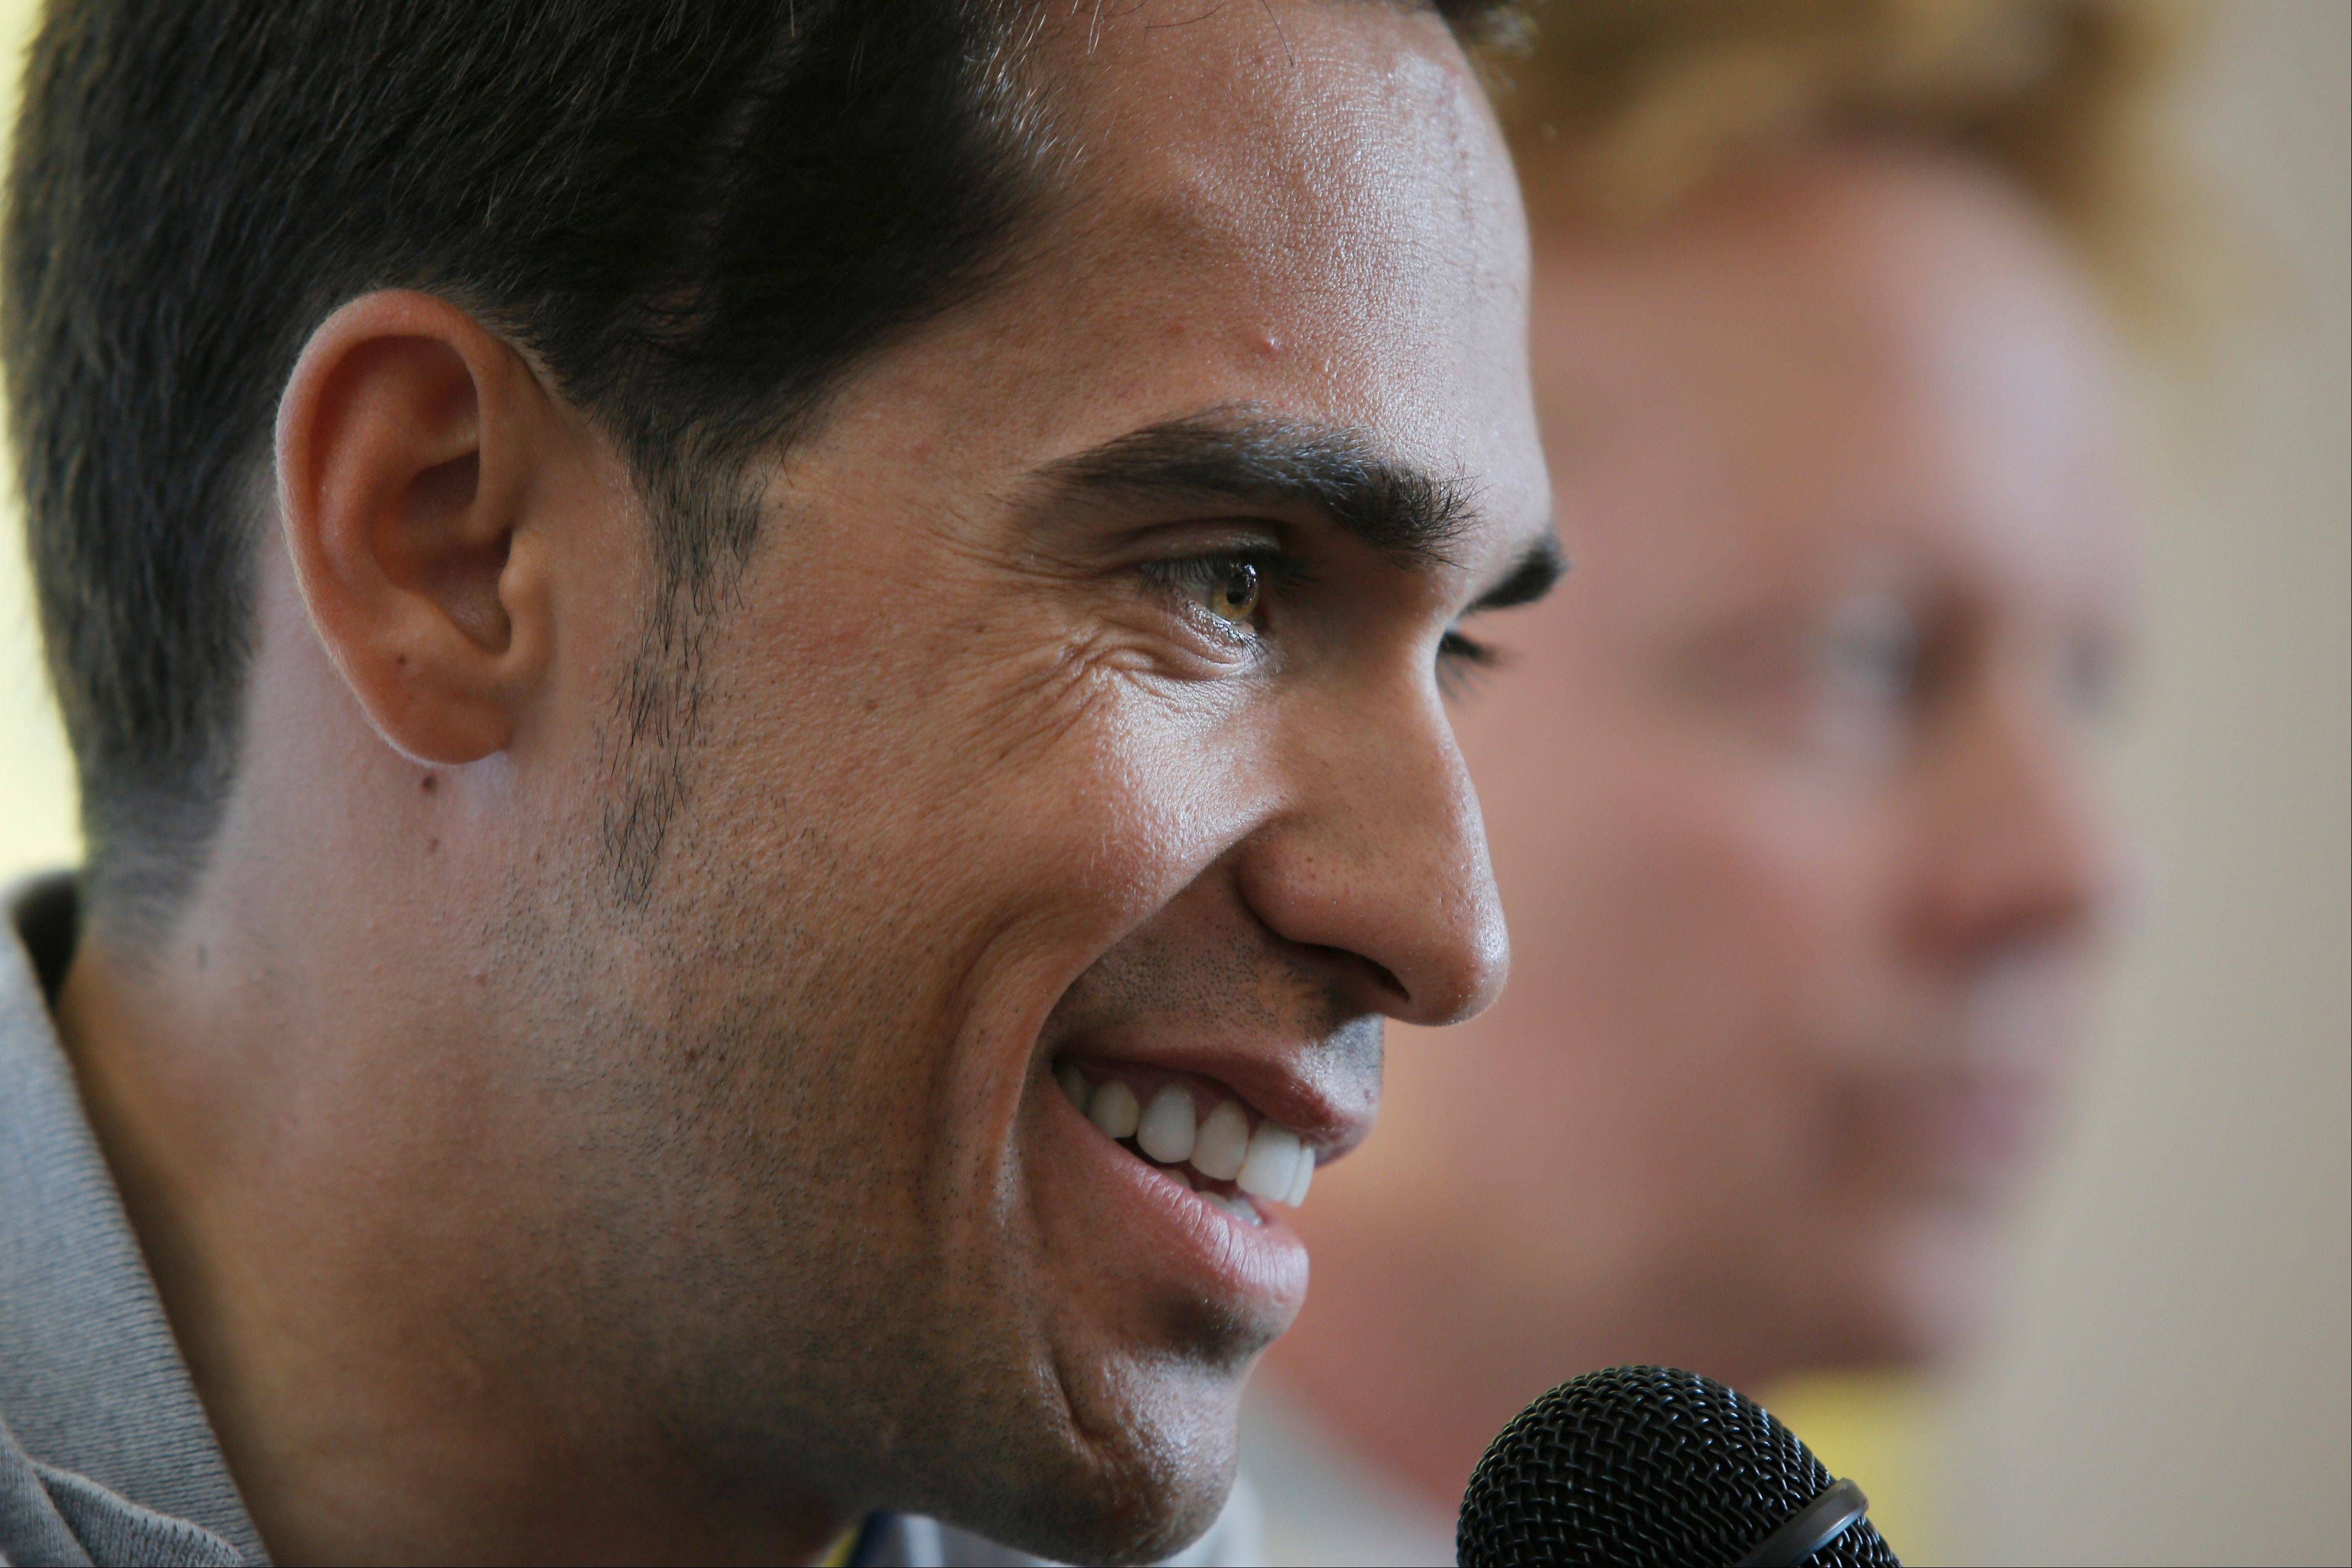 Cyclist Alberto Contador answers questions of reporters during a news conference Thursday. The Tour de France starts in Porto Vecchio on Saturday.